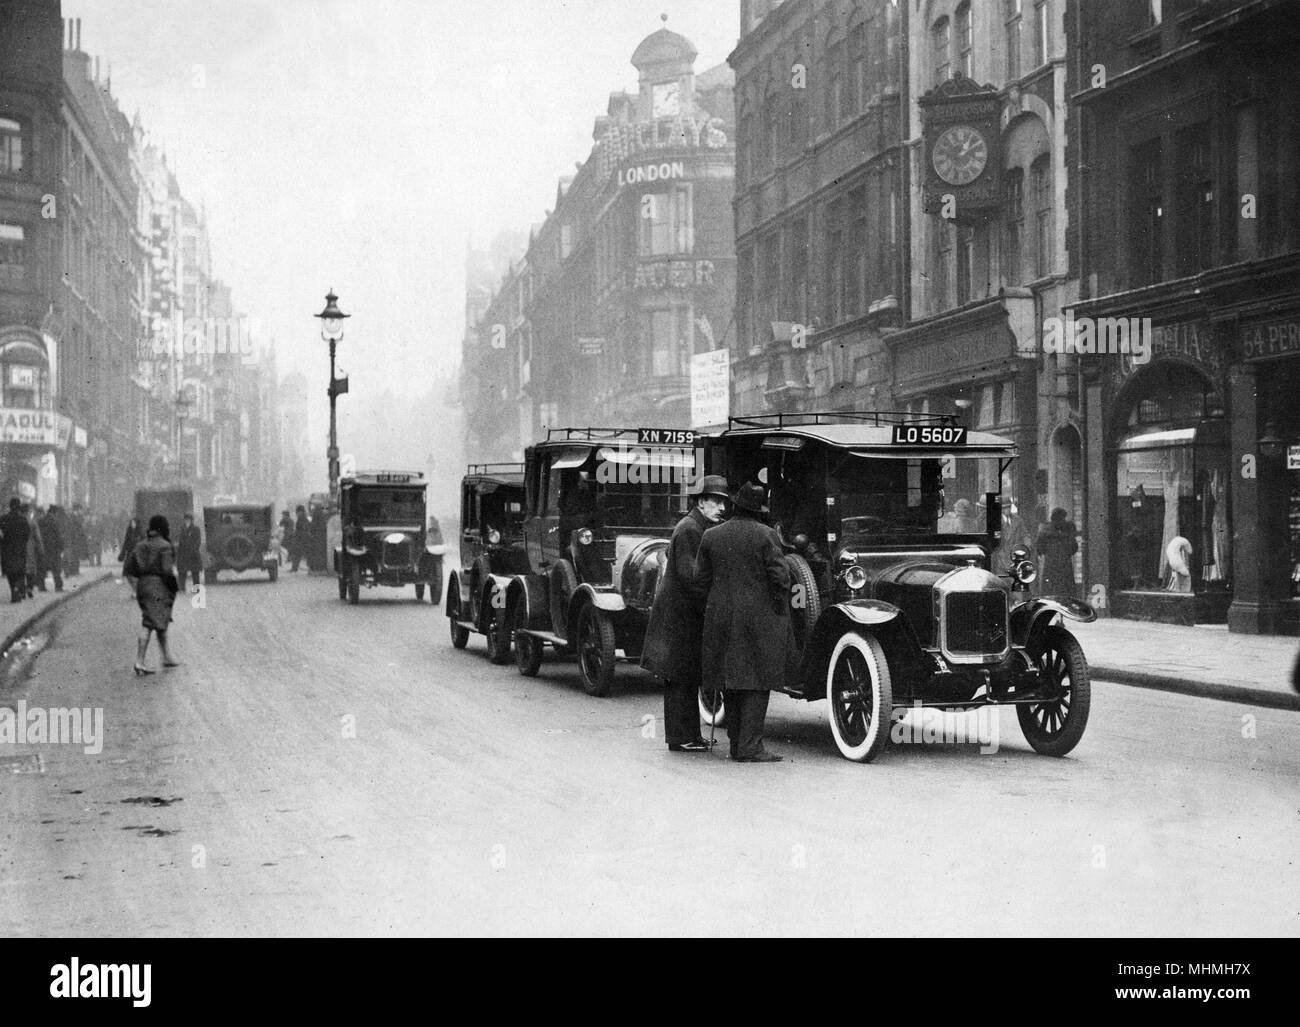 Cars on Shaftesbury Avenue.        Date: 1931 - Stock Image